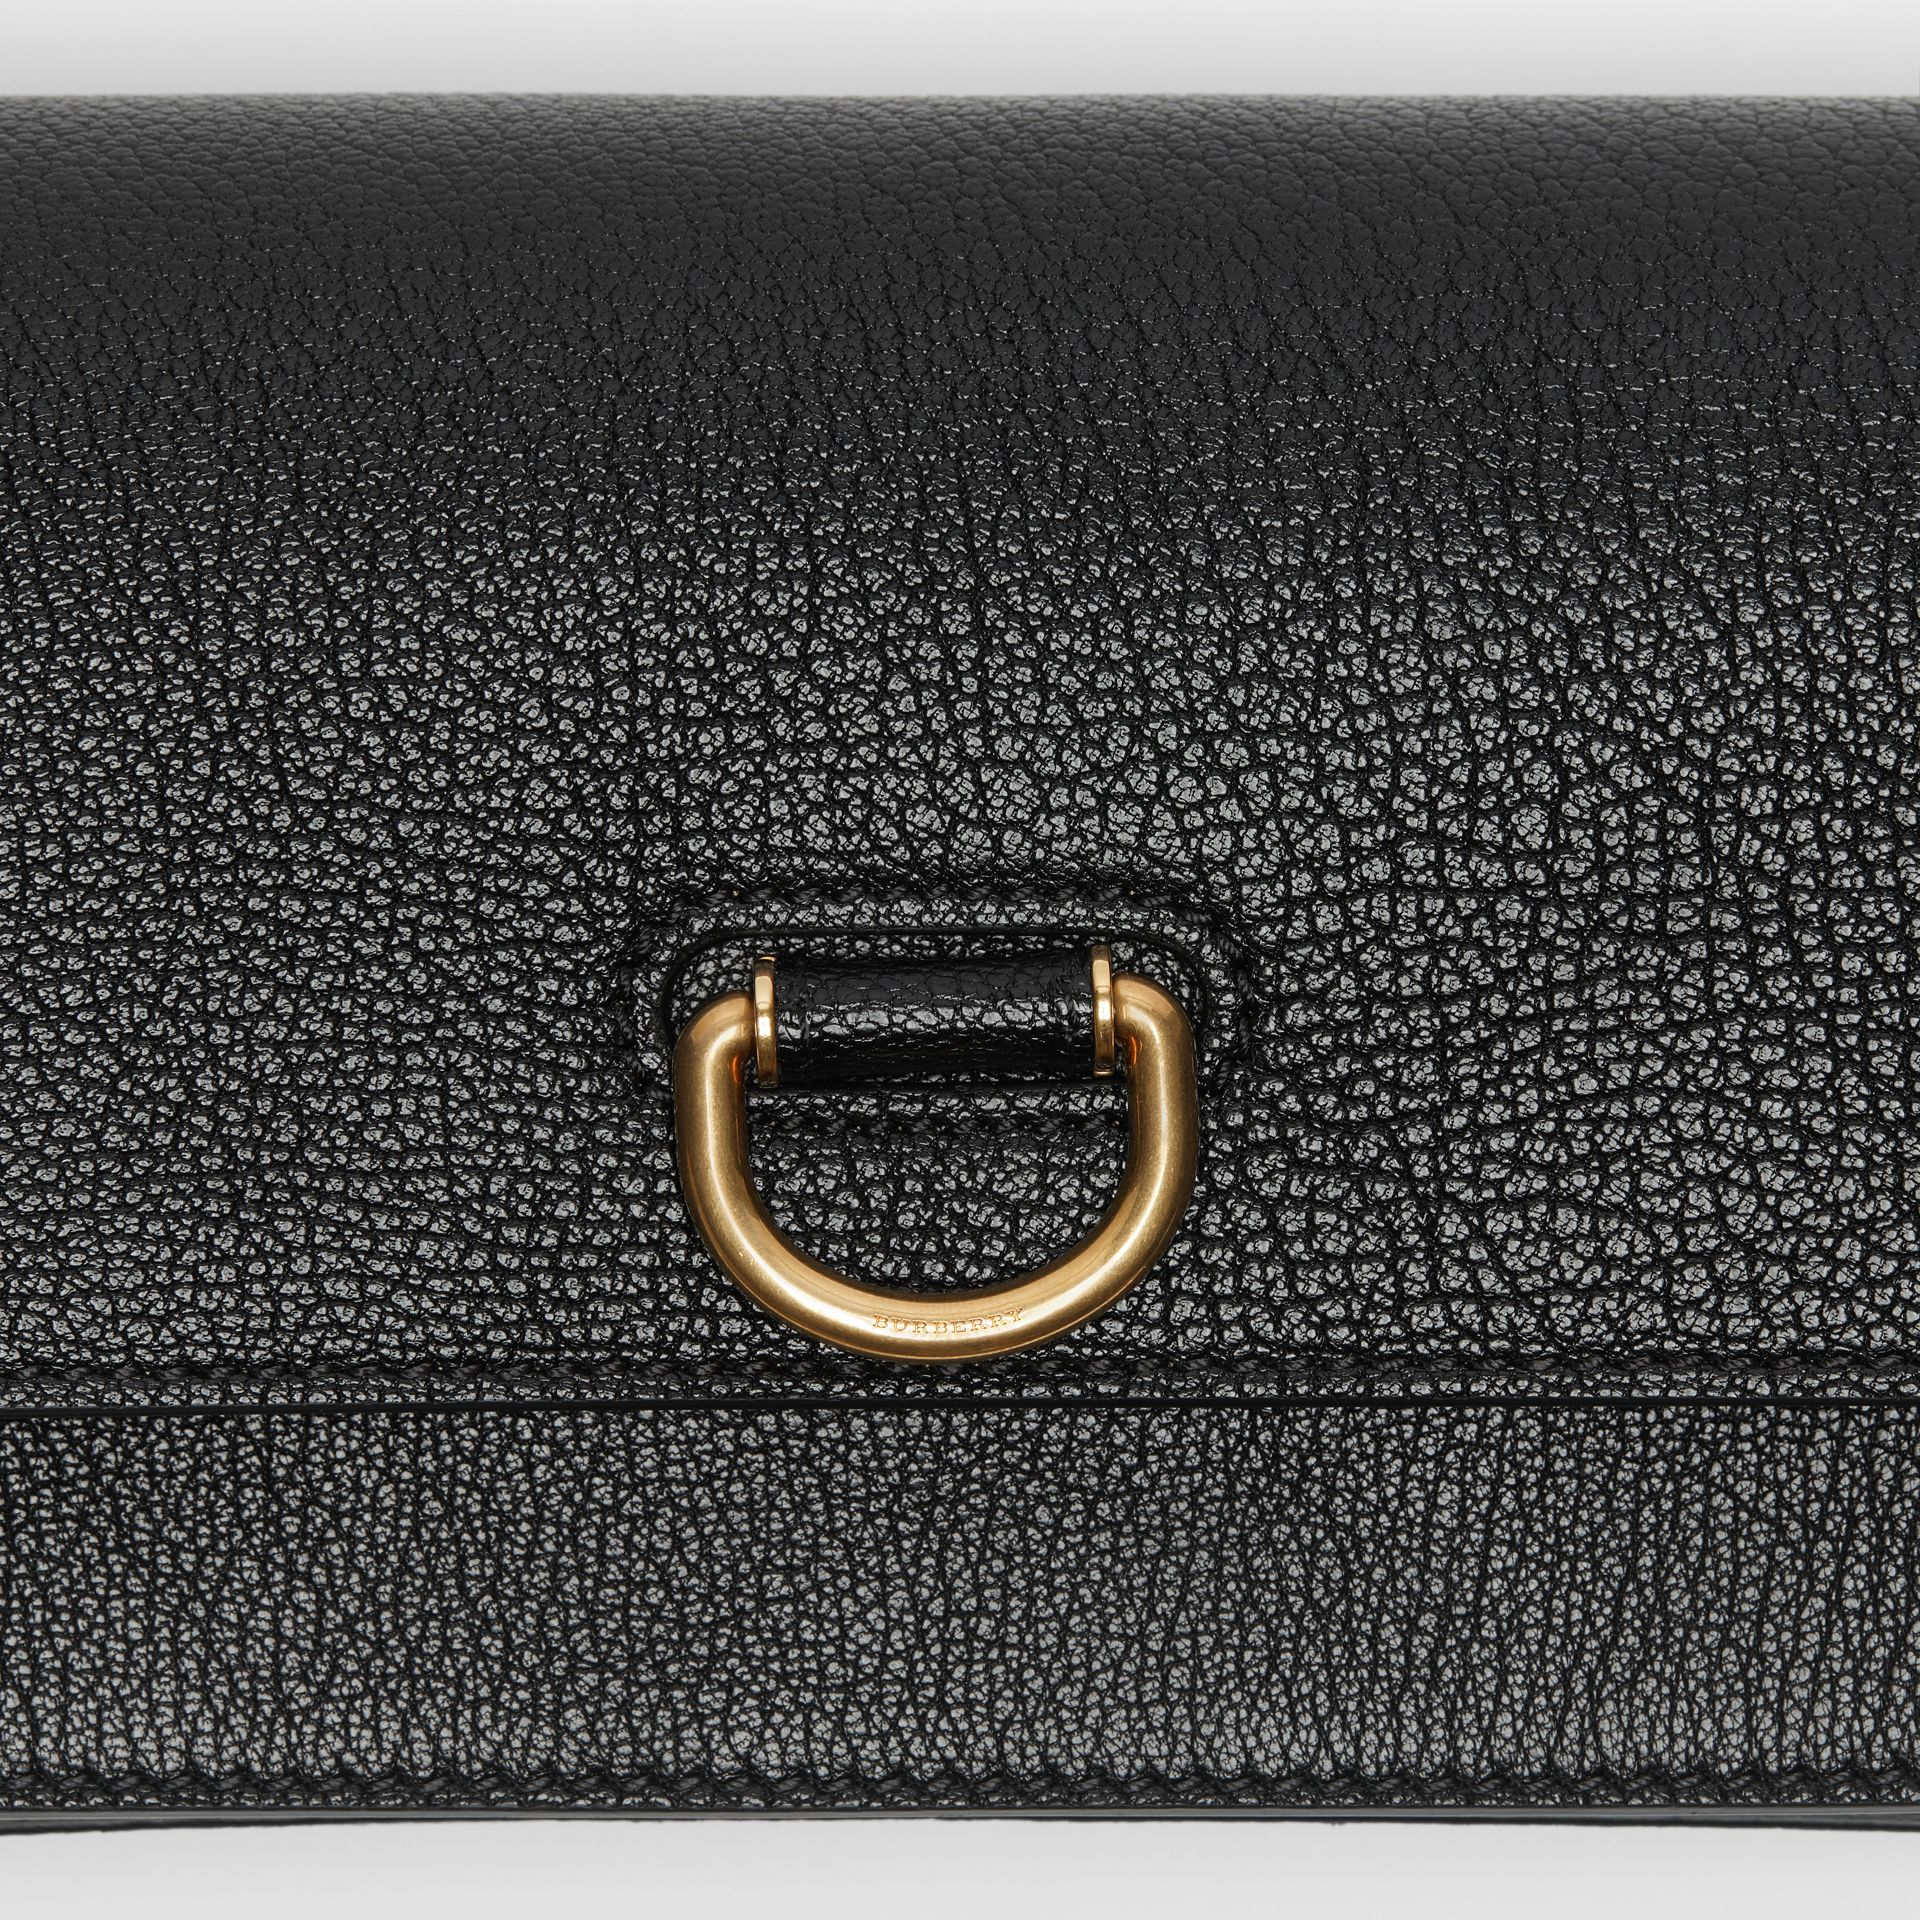 Borsa The D-ring mini in pelle (Nero) - Donna | Burberry - immagine della galleria 1